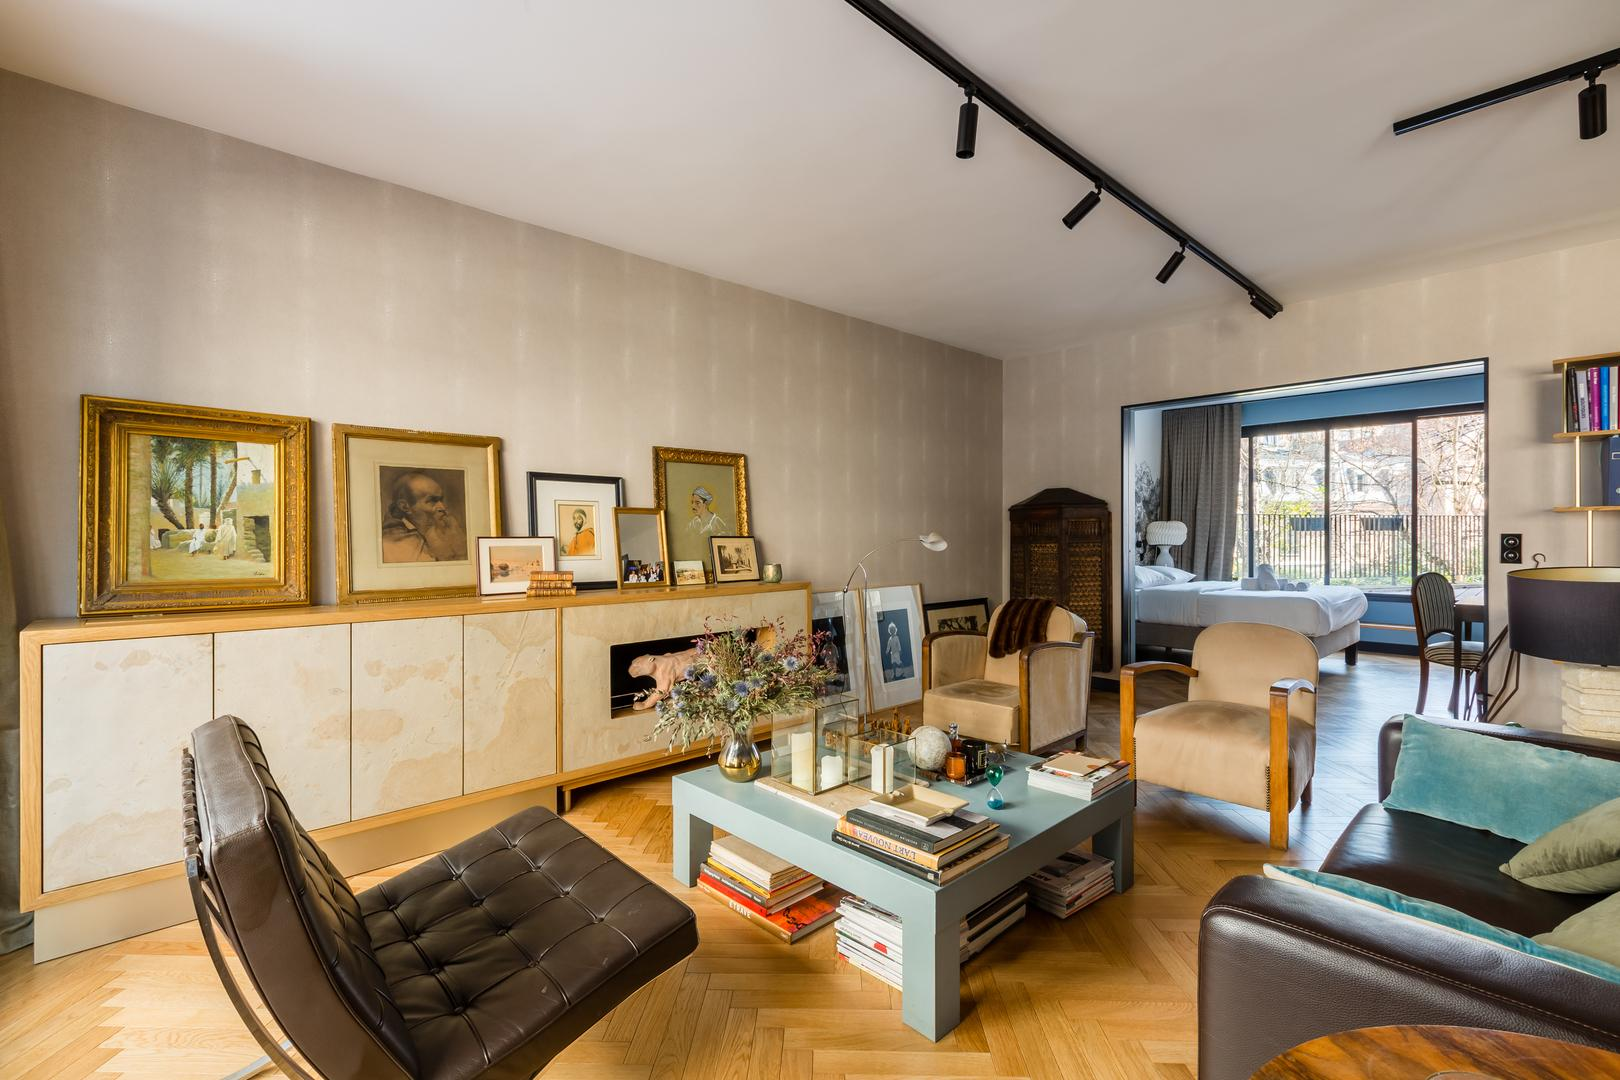 Property Image 1 - Classy Vintage Apartment with Secluded Balcony Access